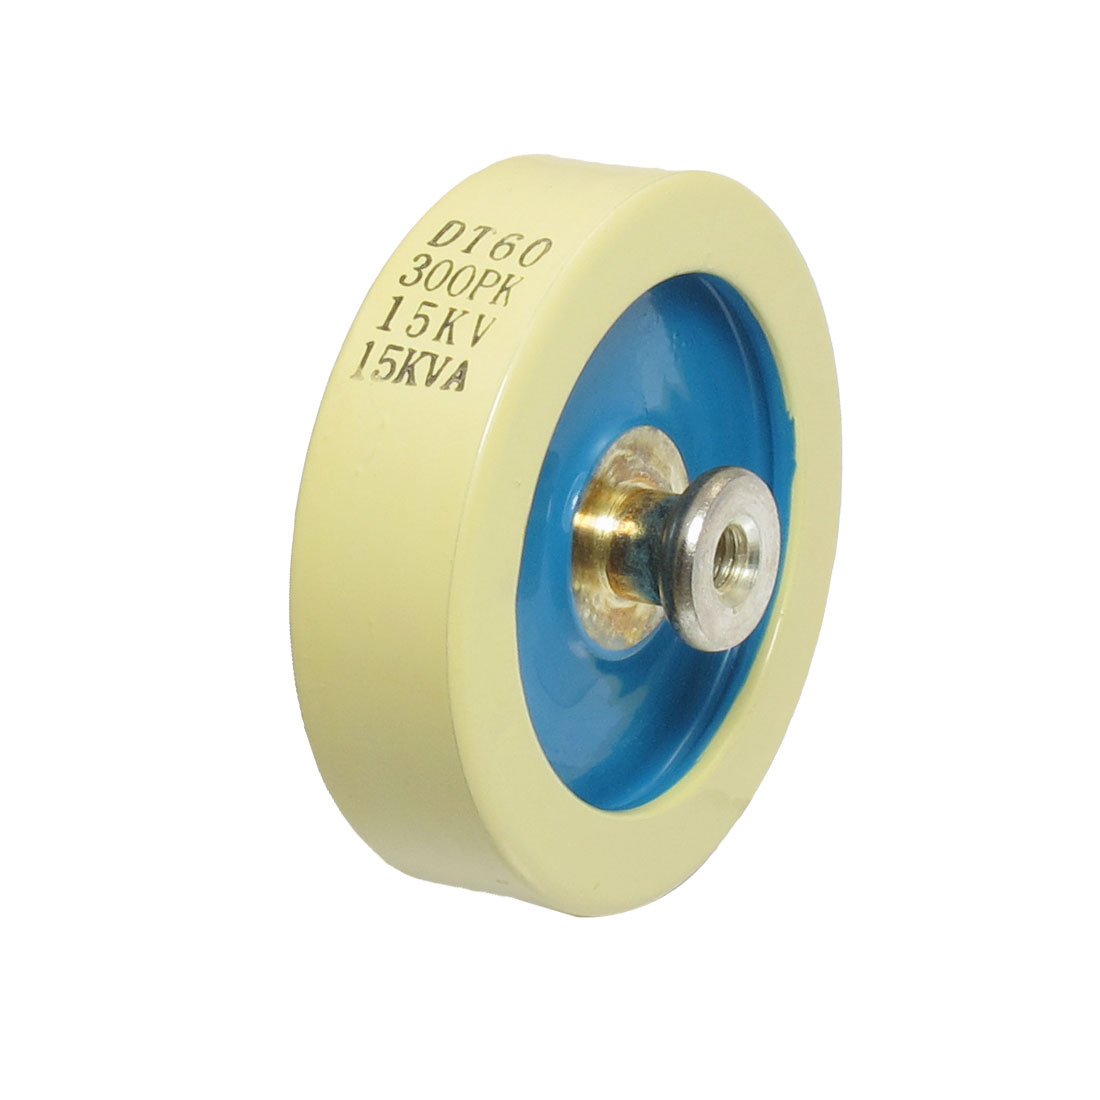 300pF-15KV-15KW-Watt-Threaded-HV-High-Voltage-Ceramic-Capacitor-Beige-Blue